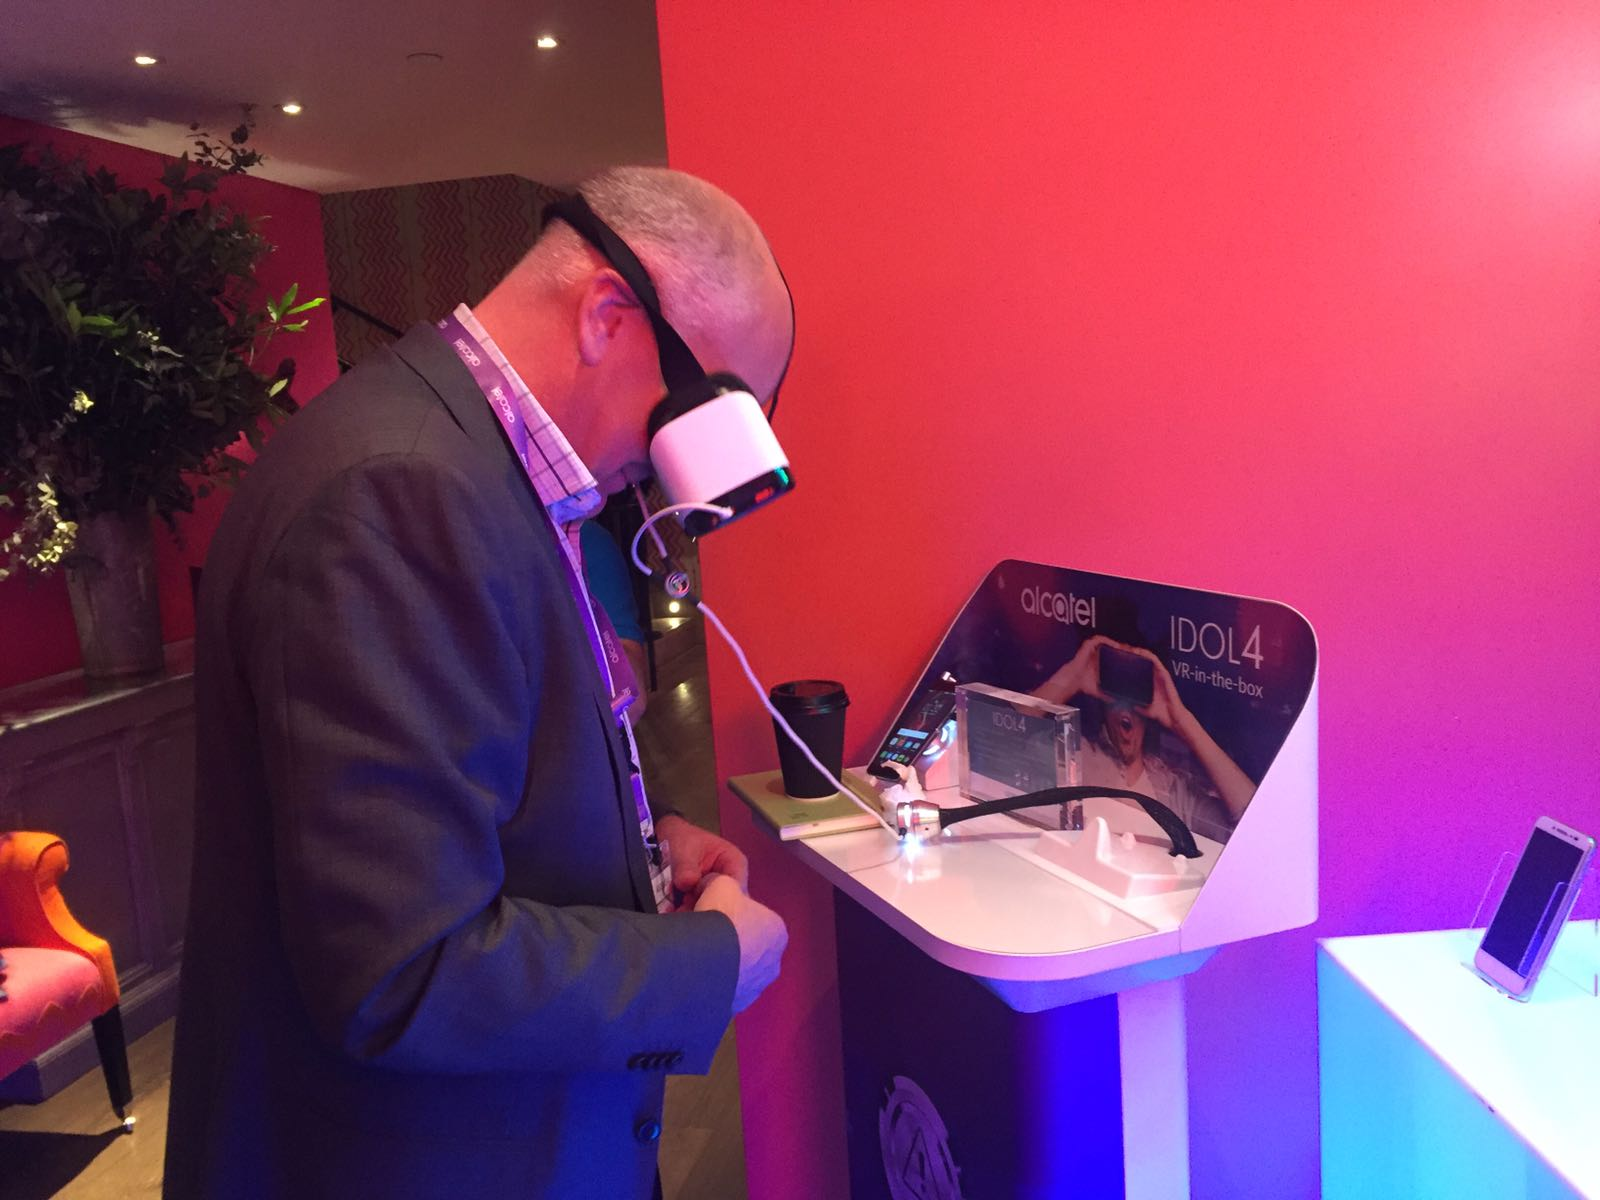 Exploring #VirtualReality at #ccspredicts - looking forward to the day ahead! @CCSInsight #Idol4 #VR https://t.co/JFKoeEmHjw